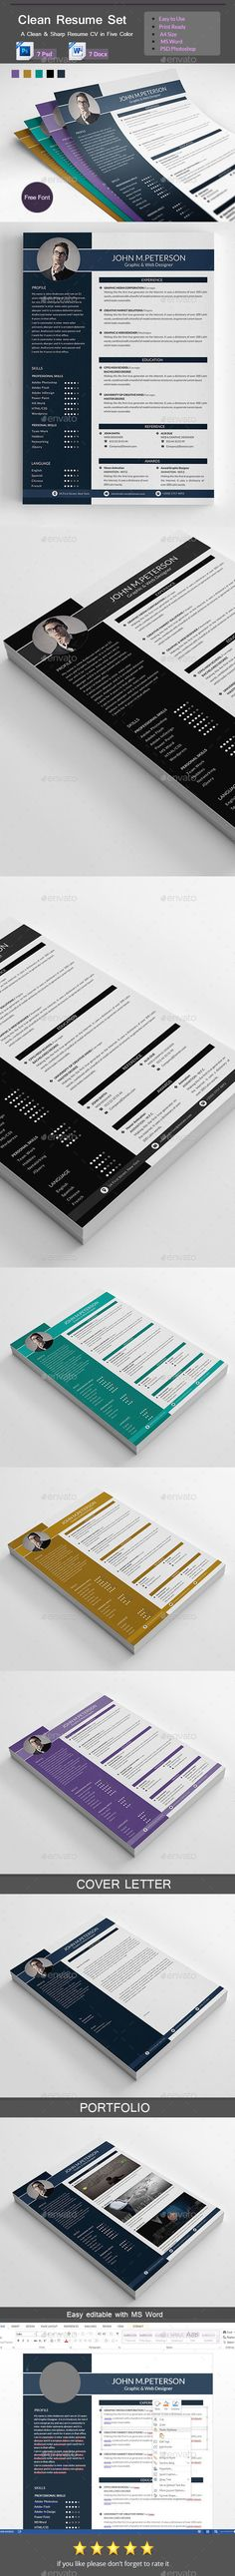 Resume — Photoshop PSD #clean #word resume template • Available here → https://graphicriver.net/item/resume/14944970?ref=pxcr